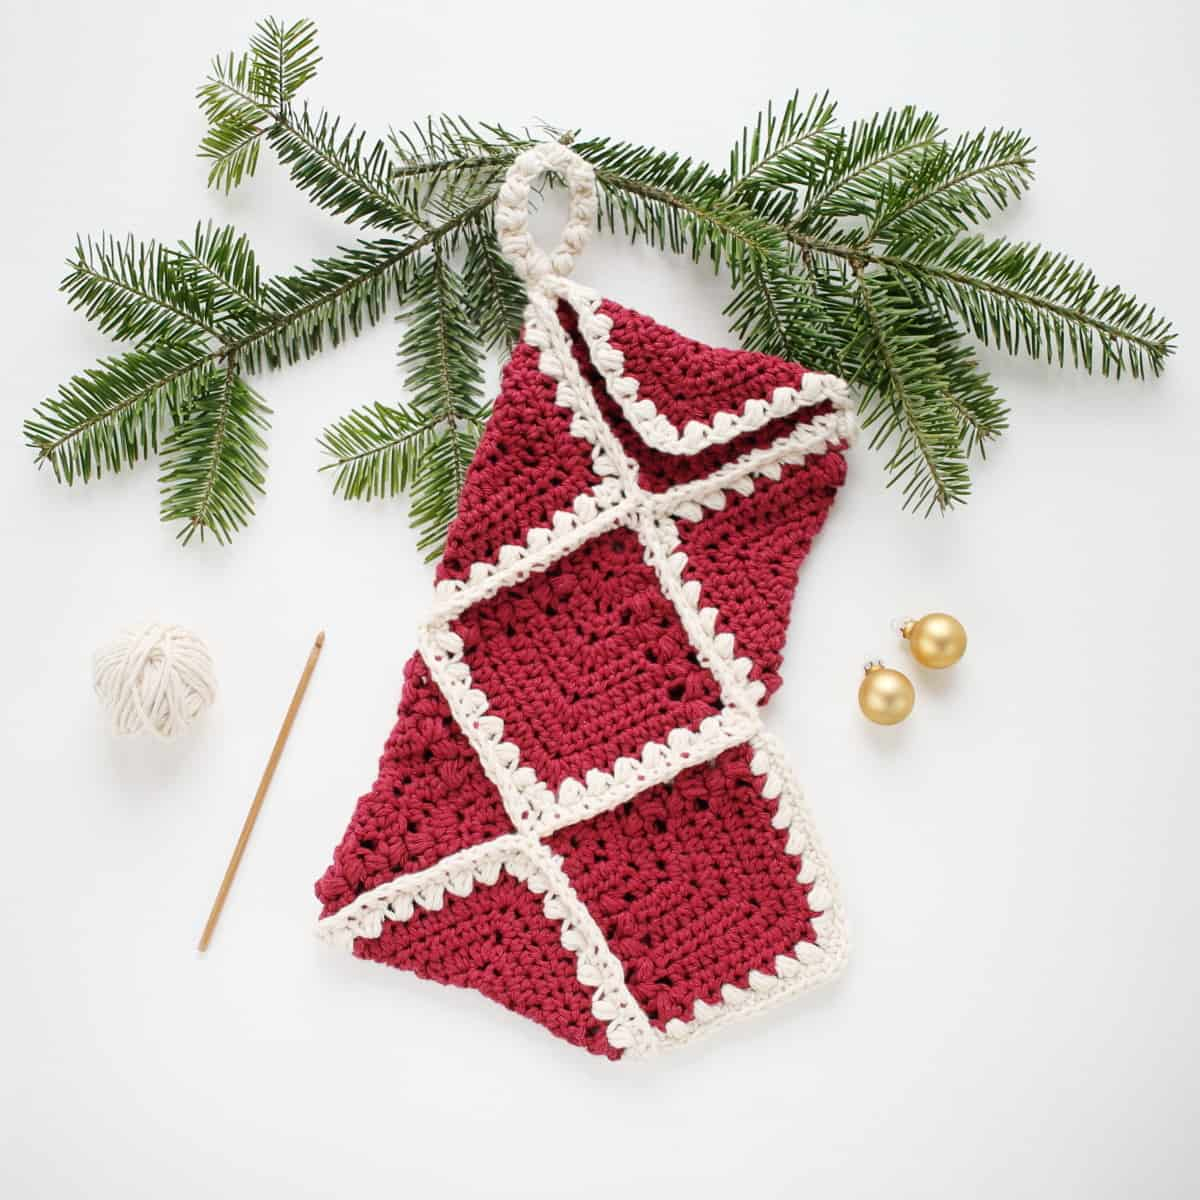 Crochet Stocking Pattern  Flutter Crochet Christmas Stocking Crochet Life